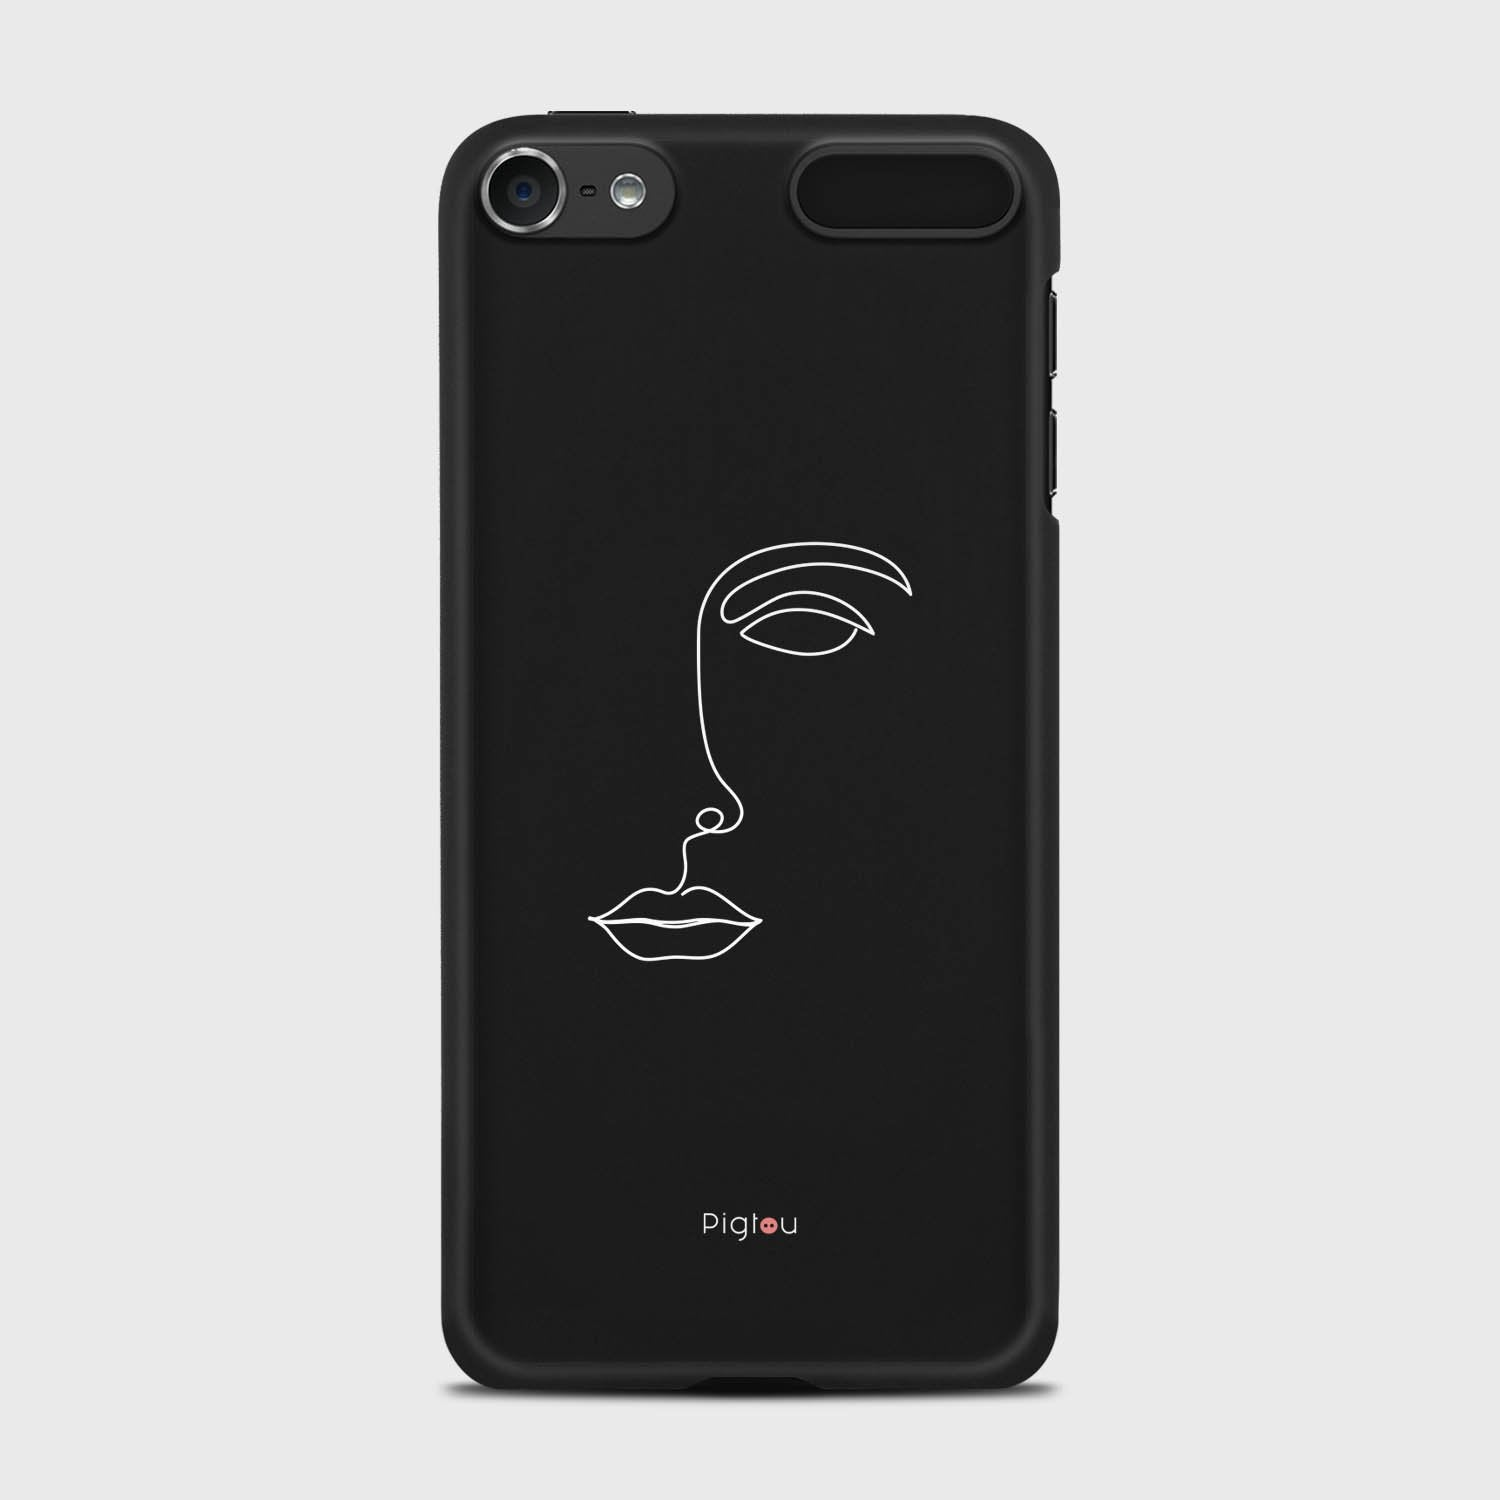 SILHOUETTE FACE iPod 7 cases | Pigtou